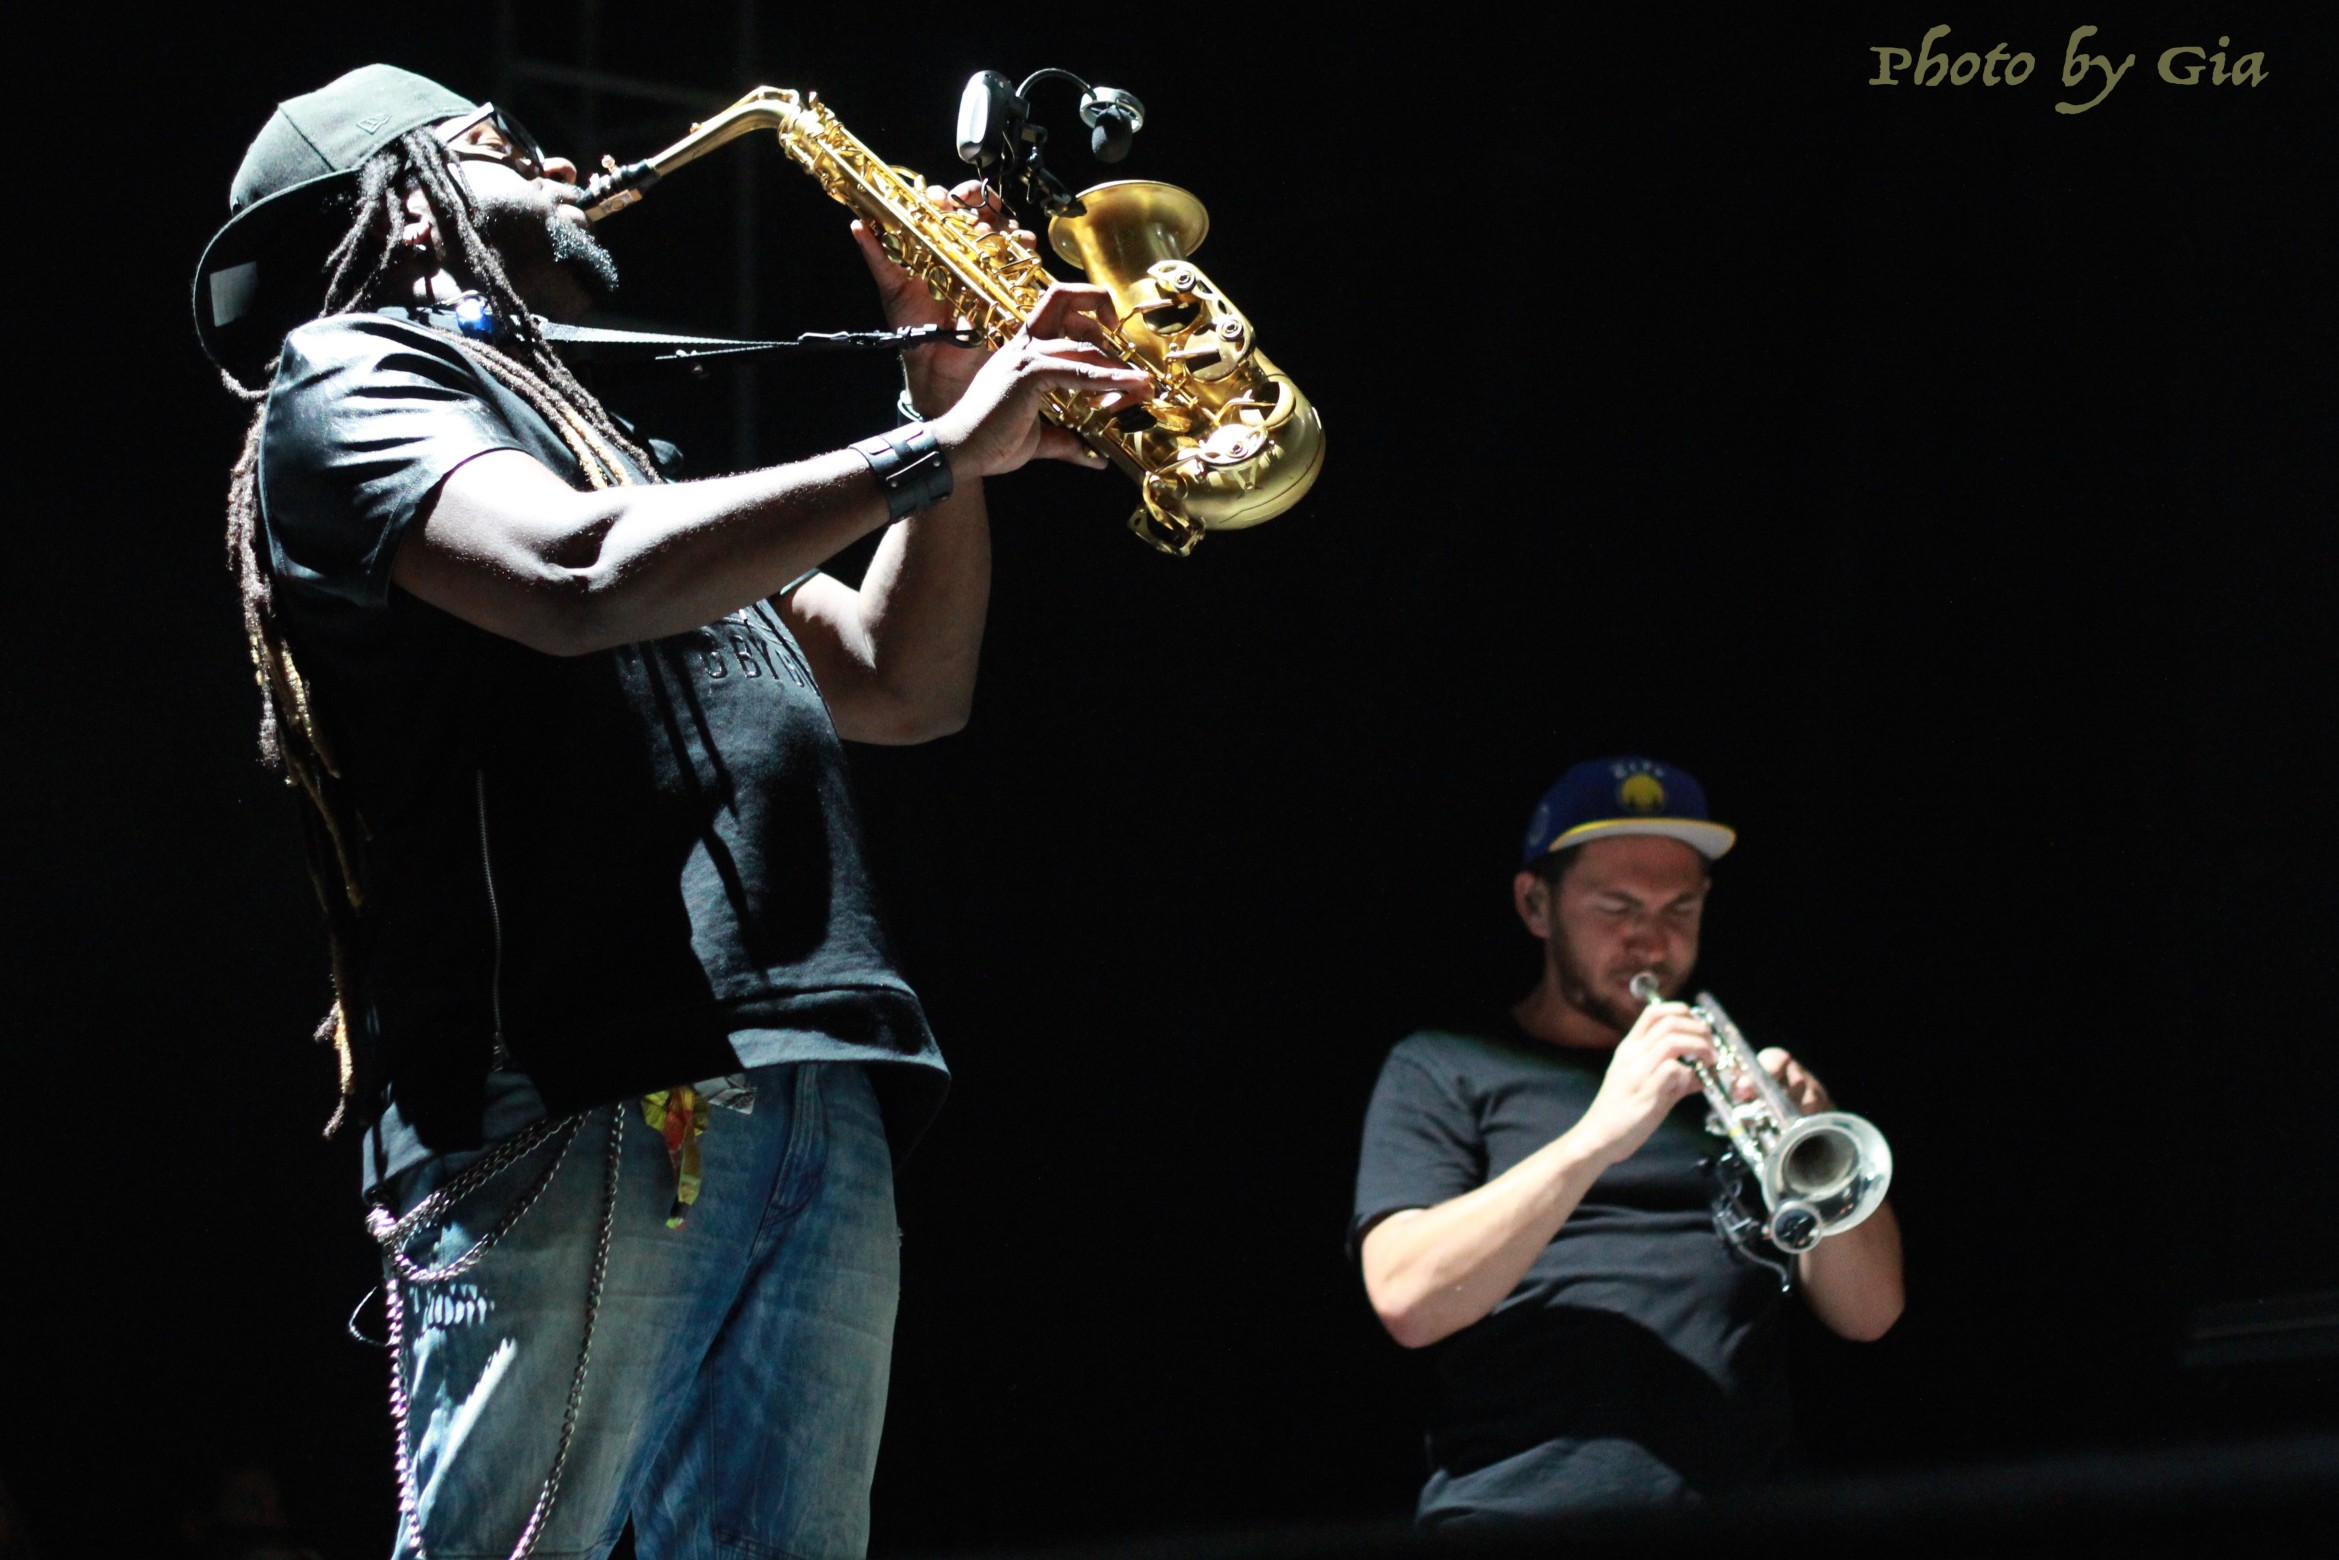 Khris Royal On Sax And Zach Meyerwitz On Trumpet, Killin' It!